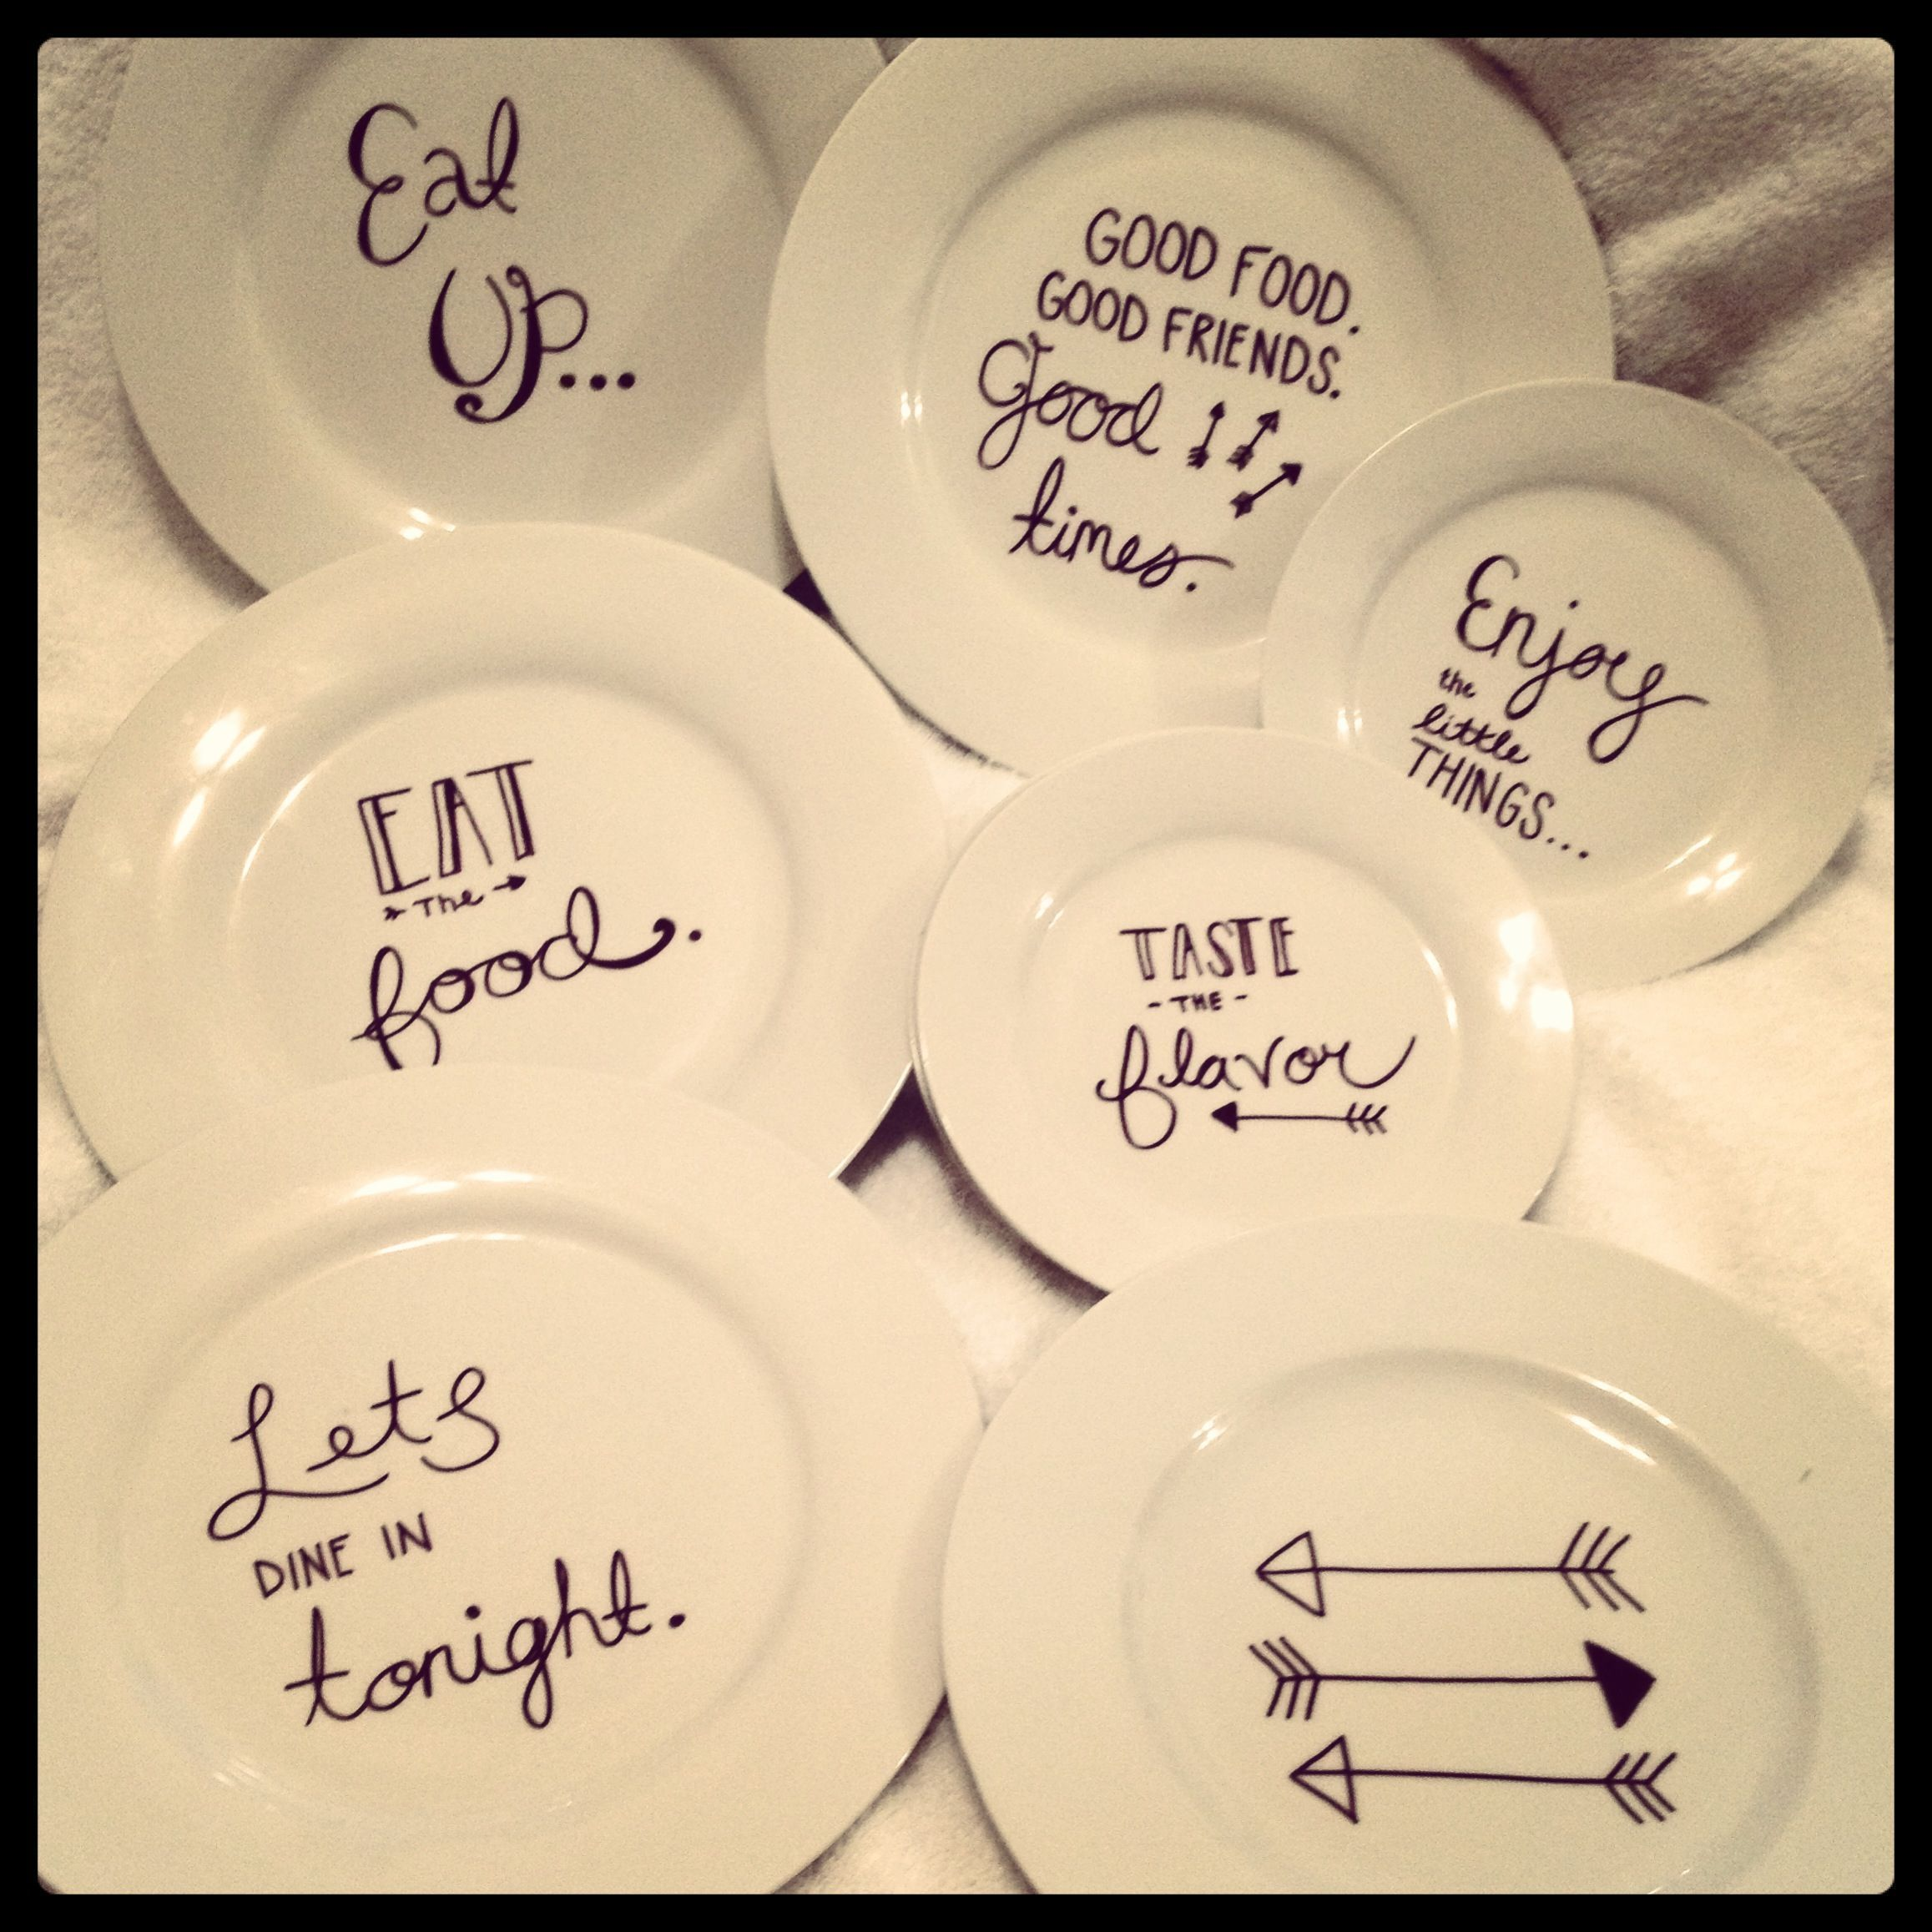 DIY Sharpie plate project! Use sharpie and bake at 350 for 30 mins=permanent. Finally got to my husbands old college dishes and I'm so pleased with the turn out! #sharpieplates DIY Sharpie plate project! Use sharpie and bake at 350 for 30 mins=permanent. Finally got to my husbands old college dishes and I'm so pleased with the turn out! #sharpieplates DIY Sharpie plate project! Use sharpie and bake at 350 for 30 mins=permanent. Finally got to my husbands old college dishes and I'm so pleased wit #sharpieplates